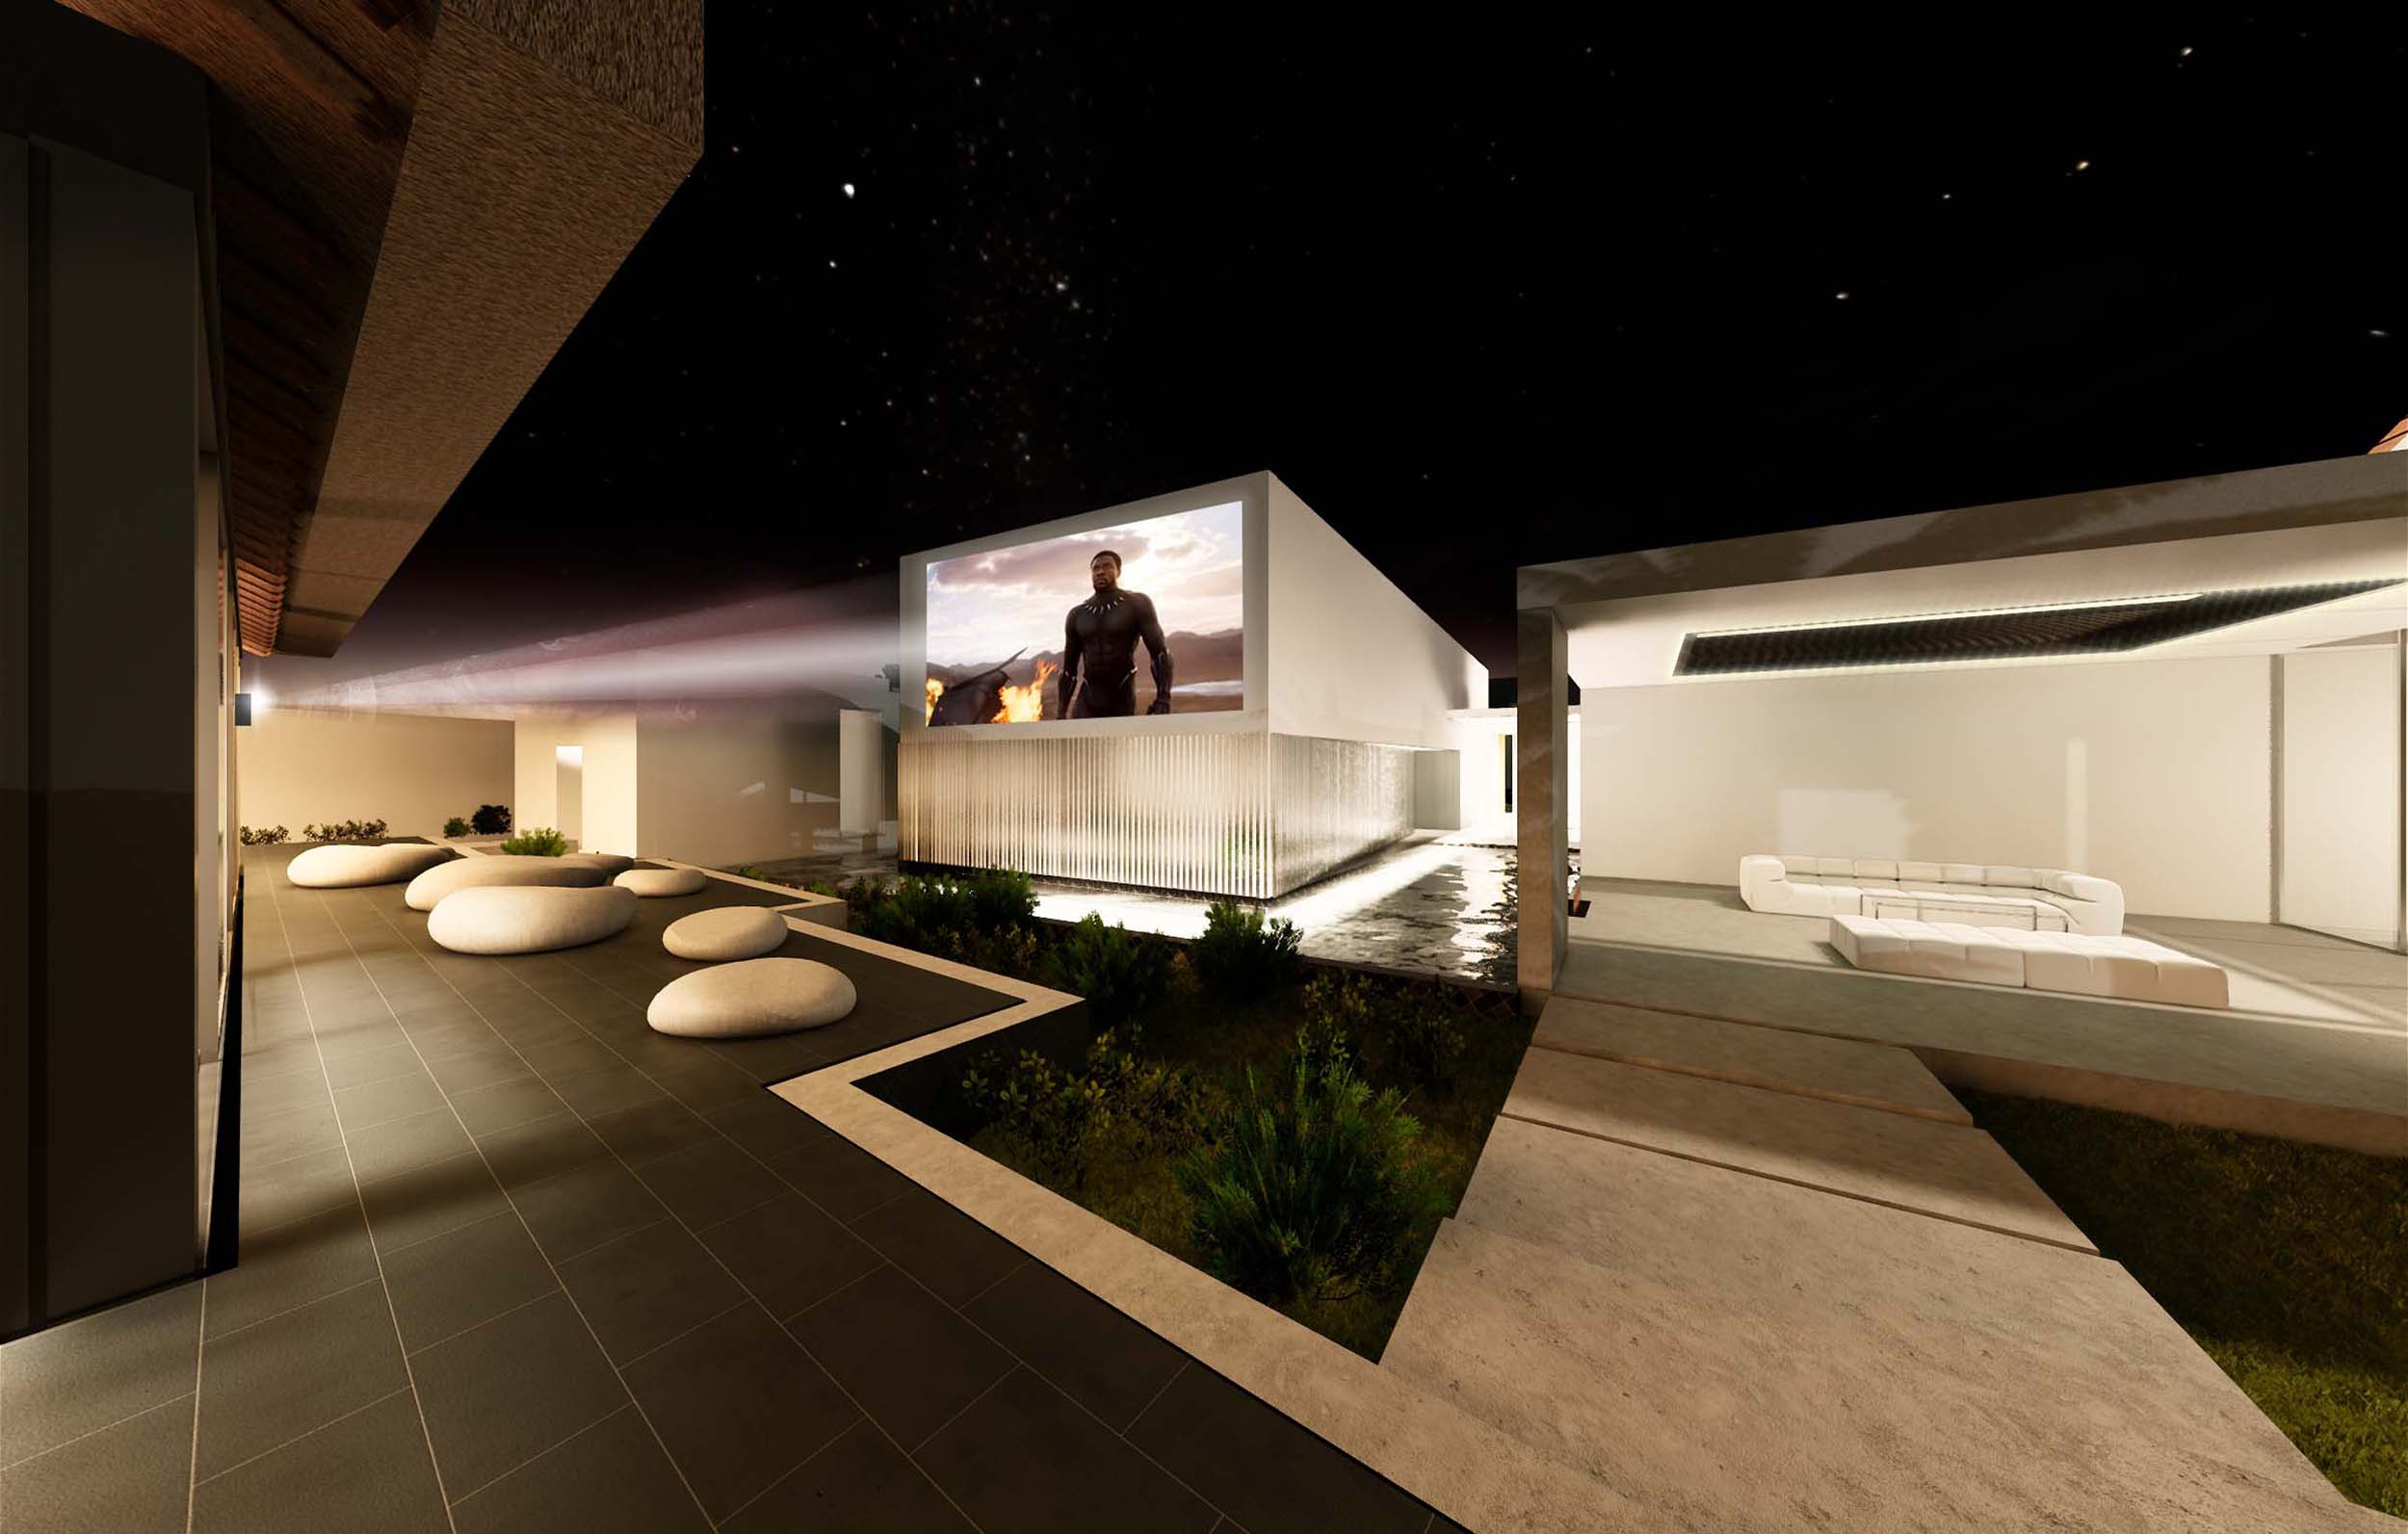 Villa Tatu nighttime external front CGI of cinema by 3bd Architects.jpg